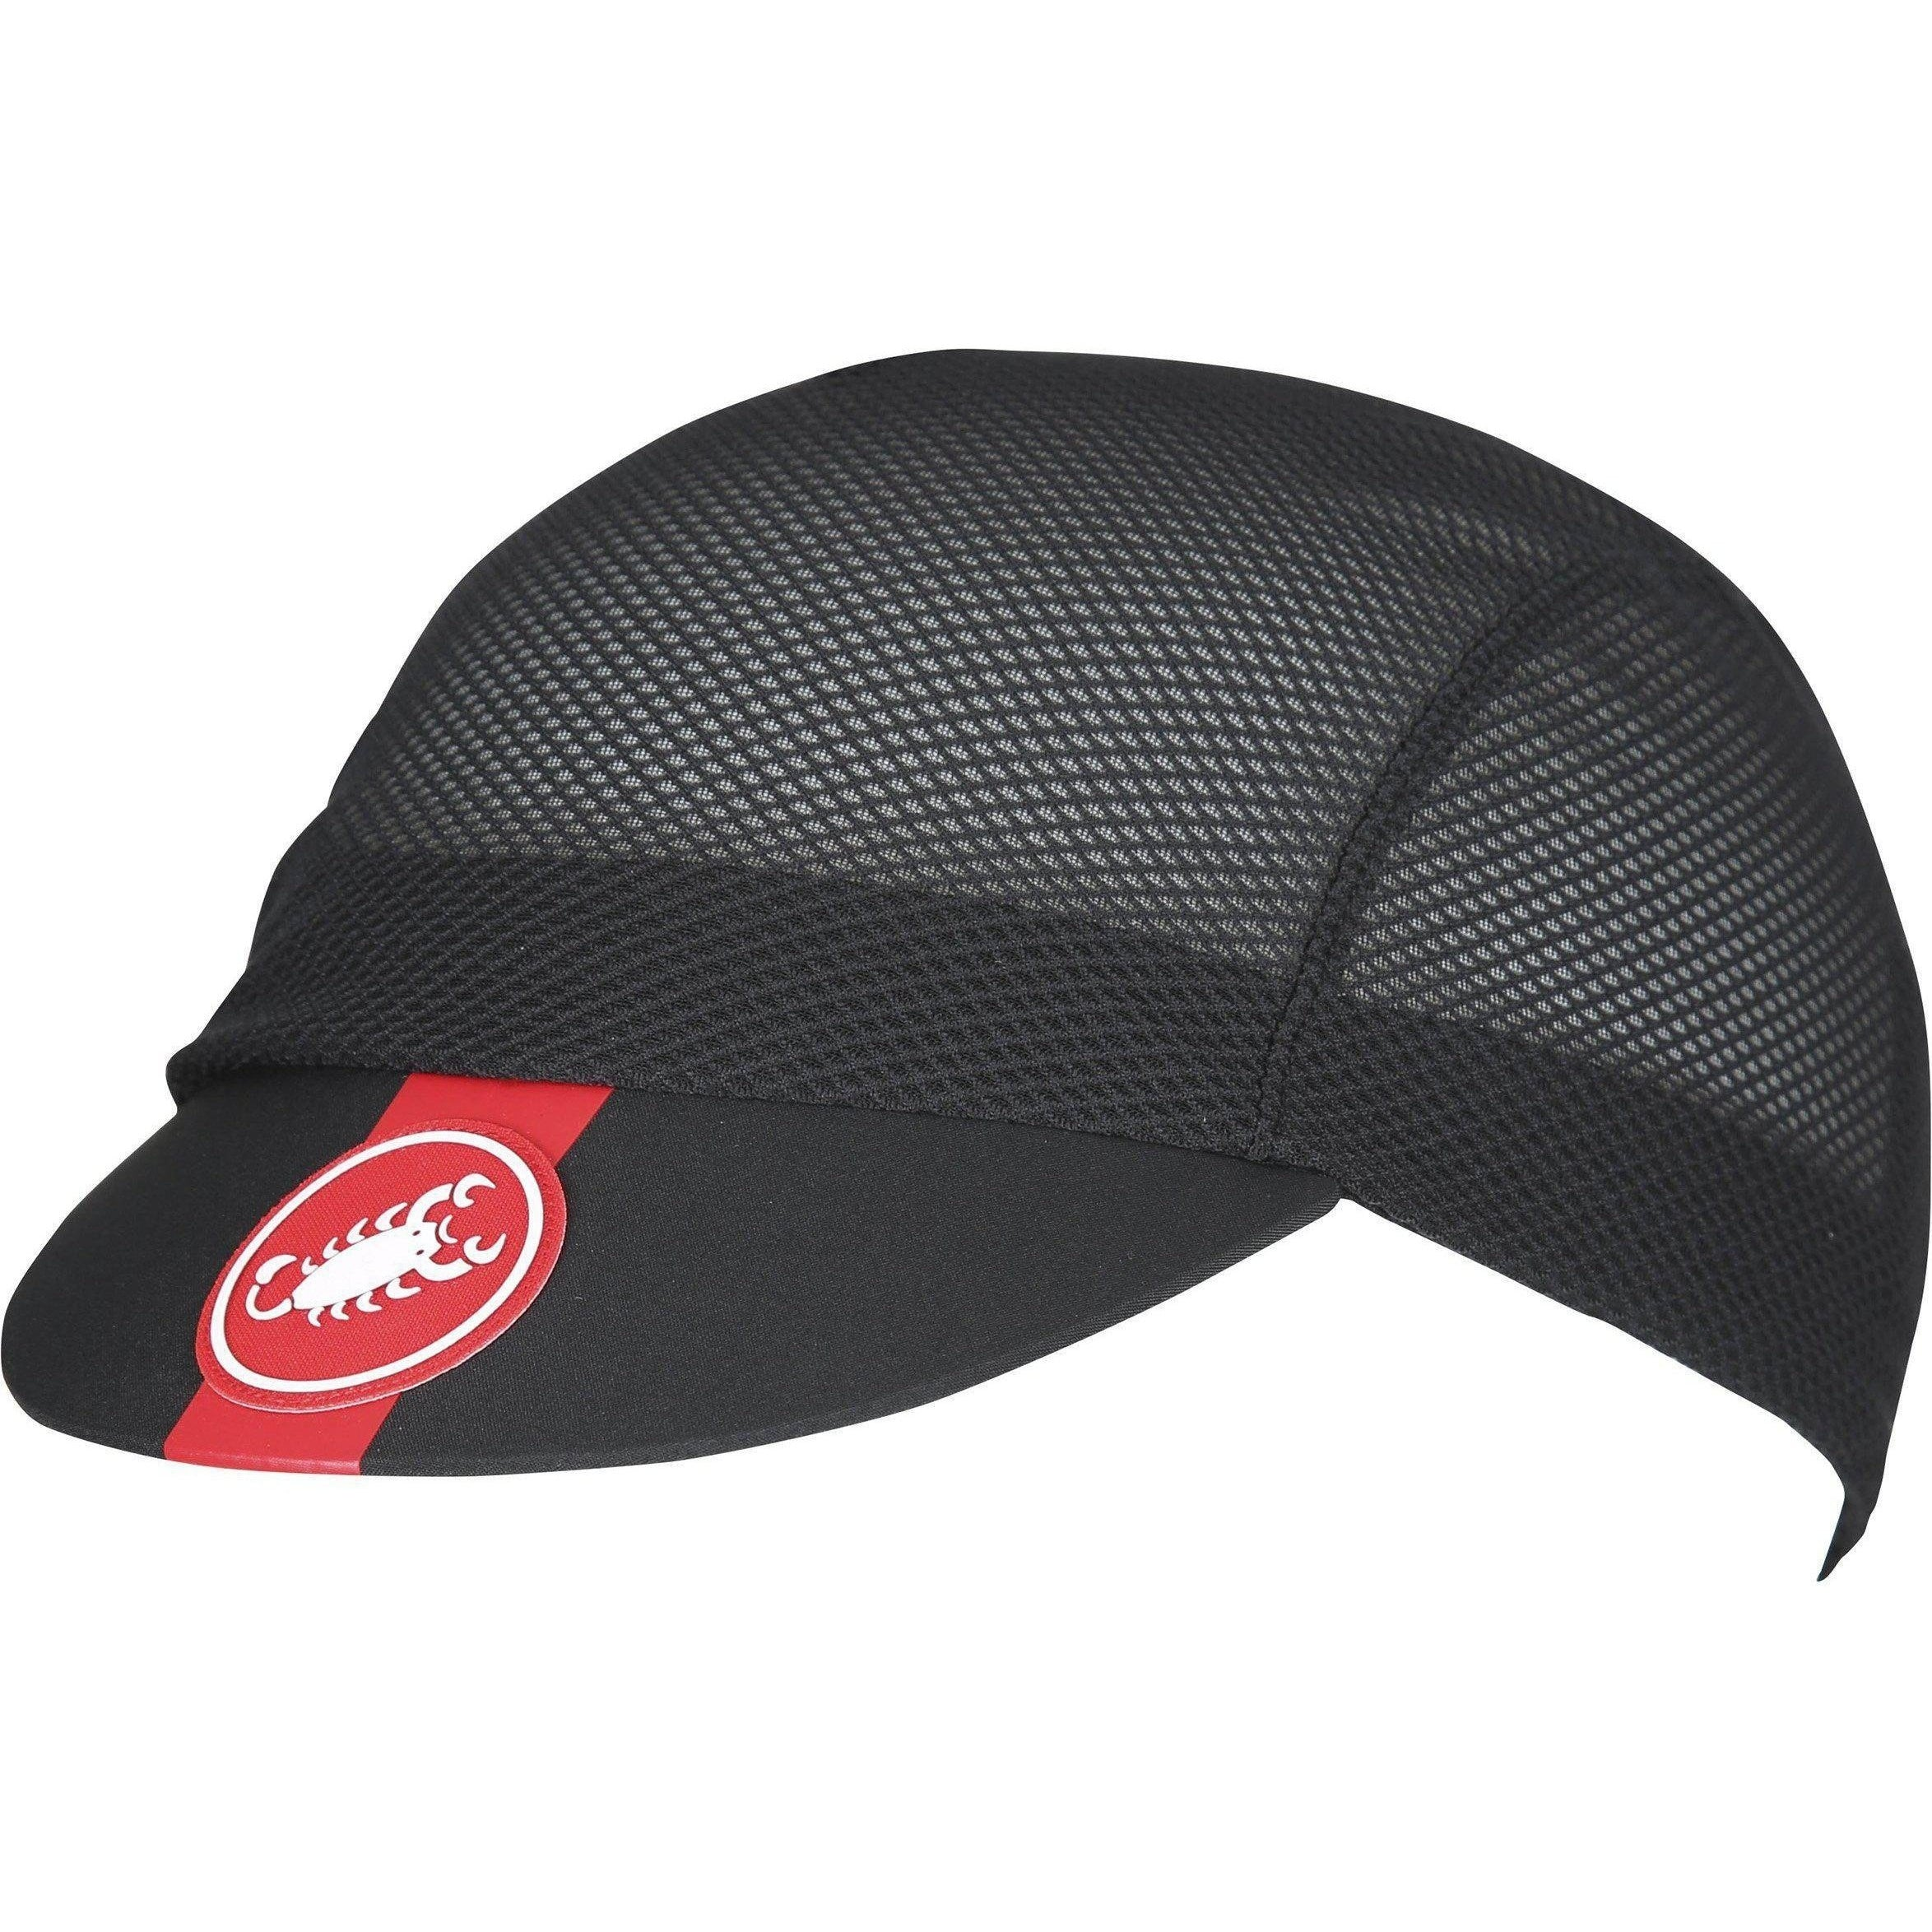 Castelli-Castelli A/C Cycling Cap-Black-UNI-CS180240108-saddleback-elite-performance-cycling